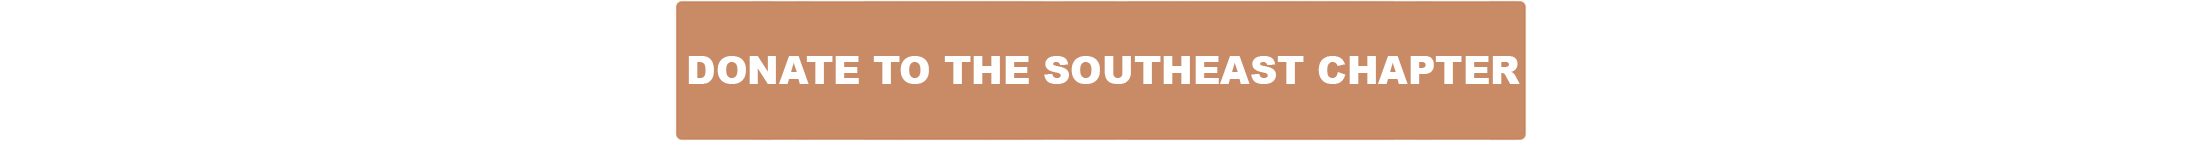 DONATE TO THE SOUTHEAST CHAPTER